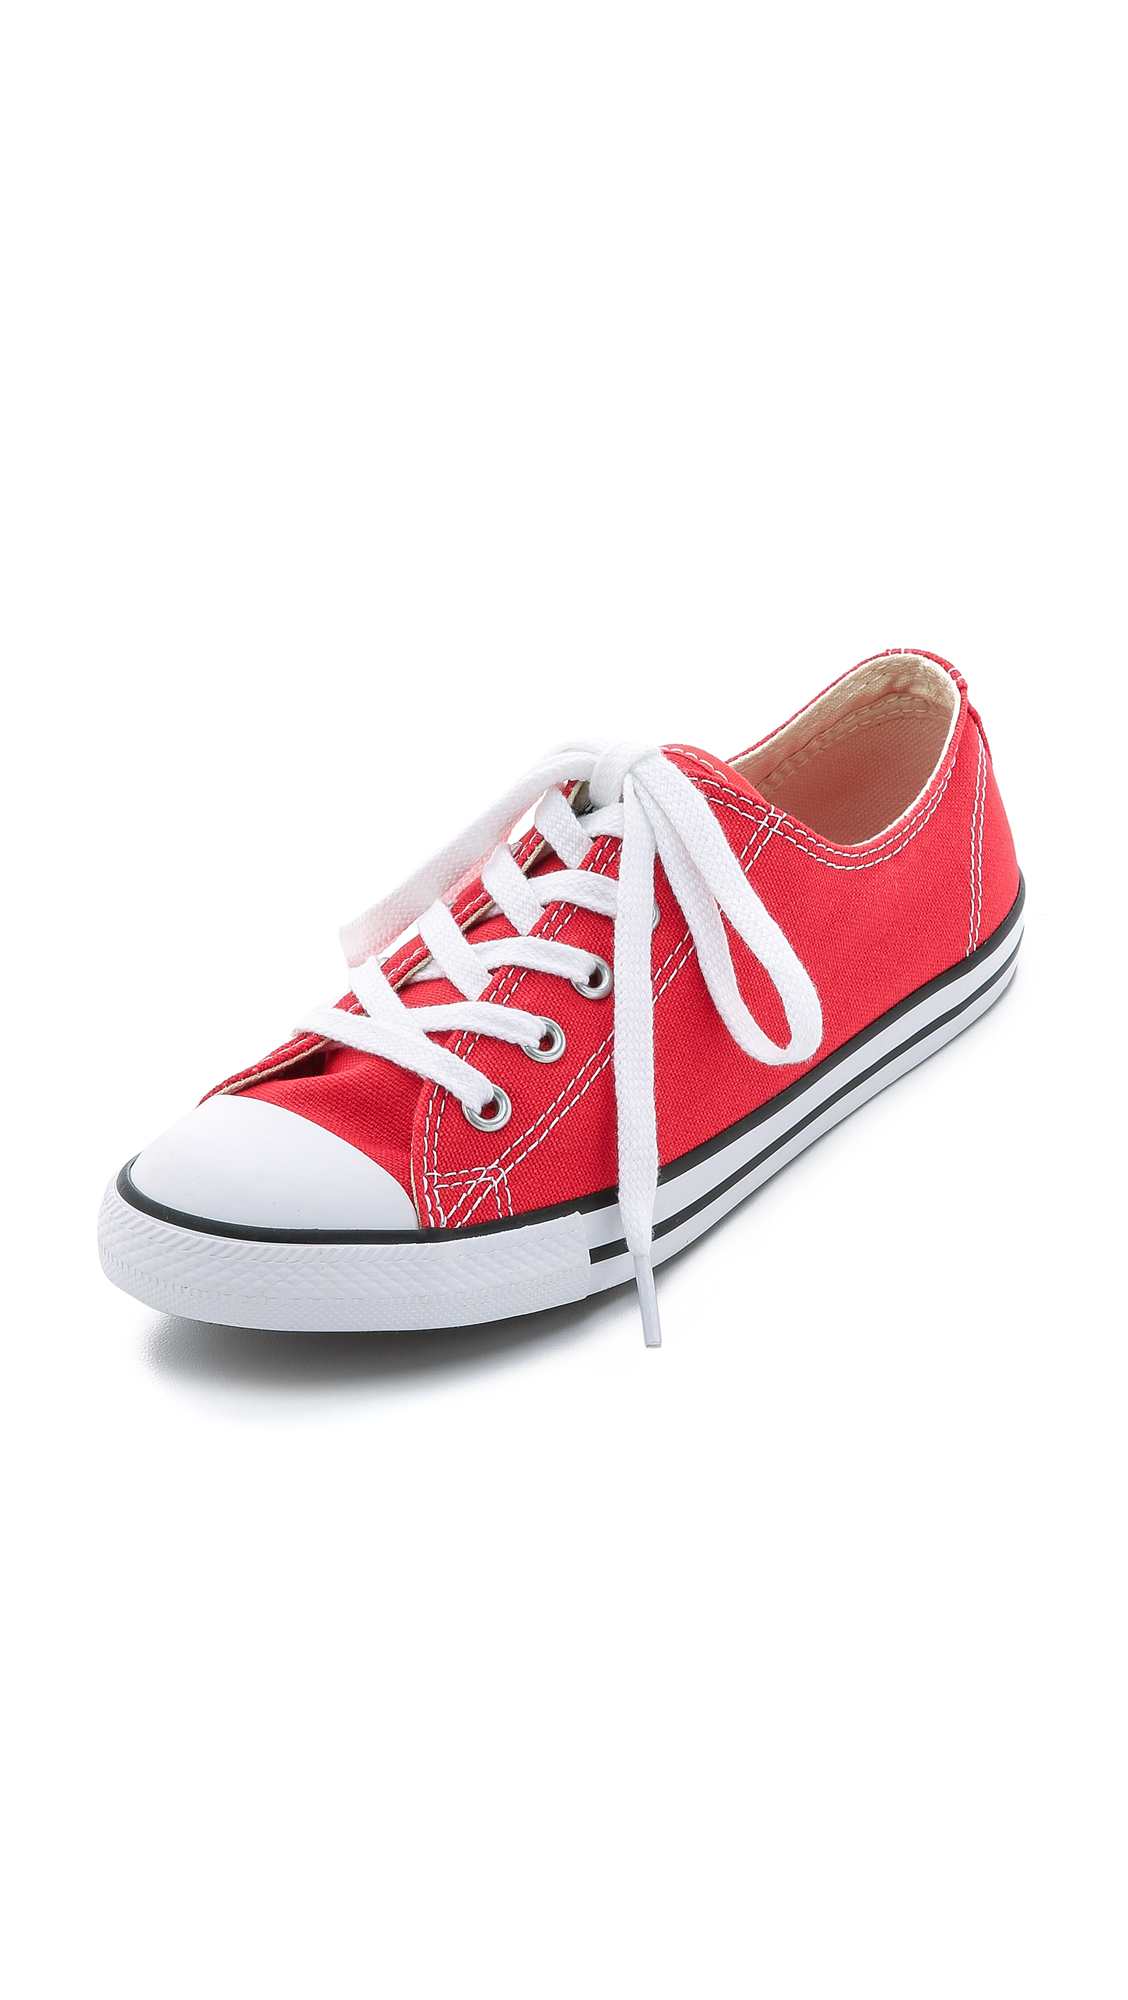 Men'S Chuck Taylor All Star Sneakers From Finish Line in Red/White